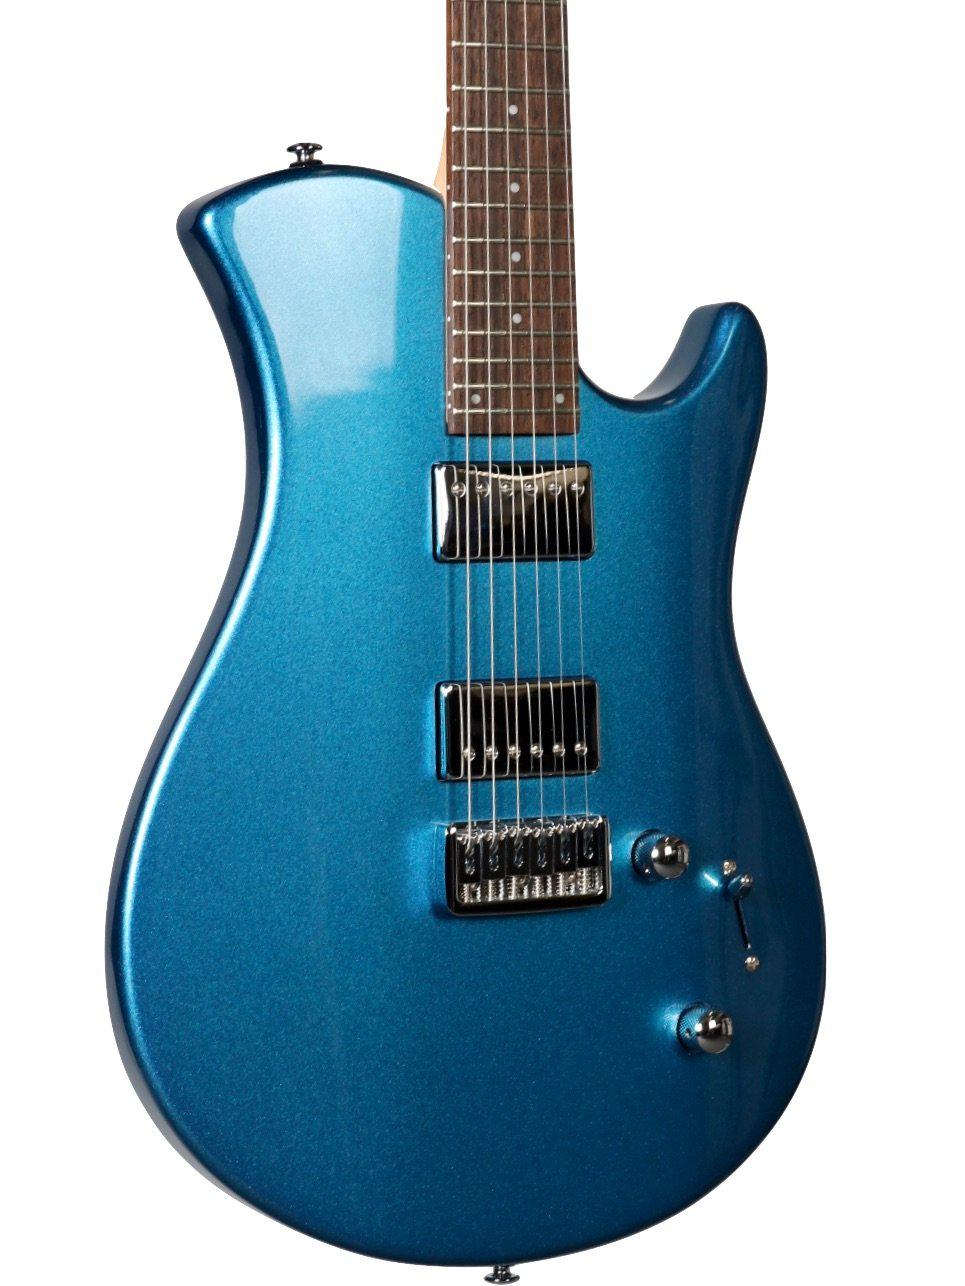 Trinity by Relish Guitars Blue Metallic #TR200344 - Relish Guitars - Heartbreaker Guitars